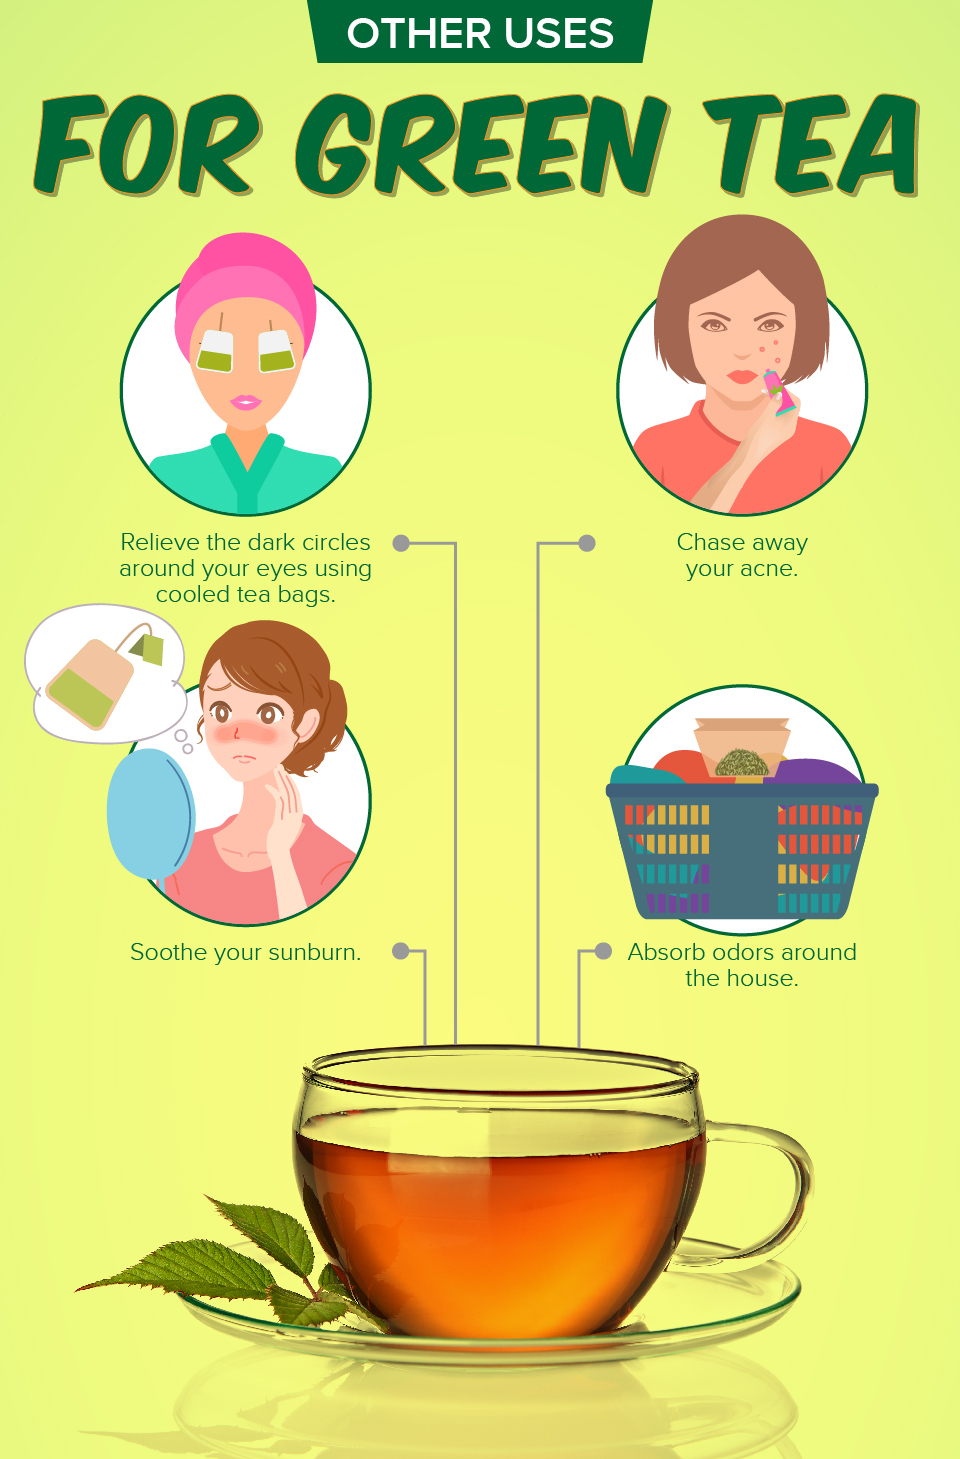 Other Uses for Green Tea